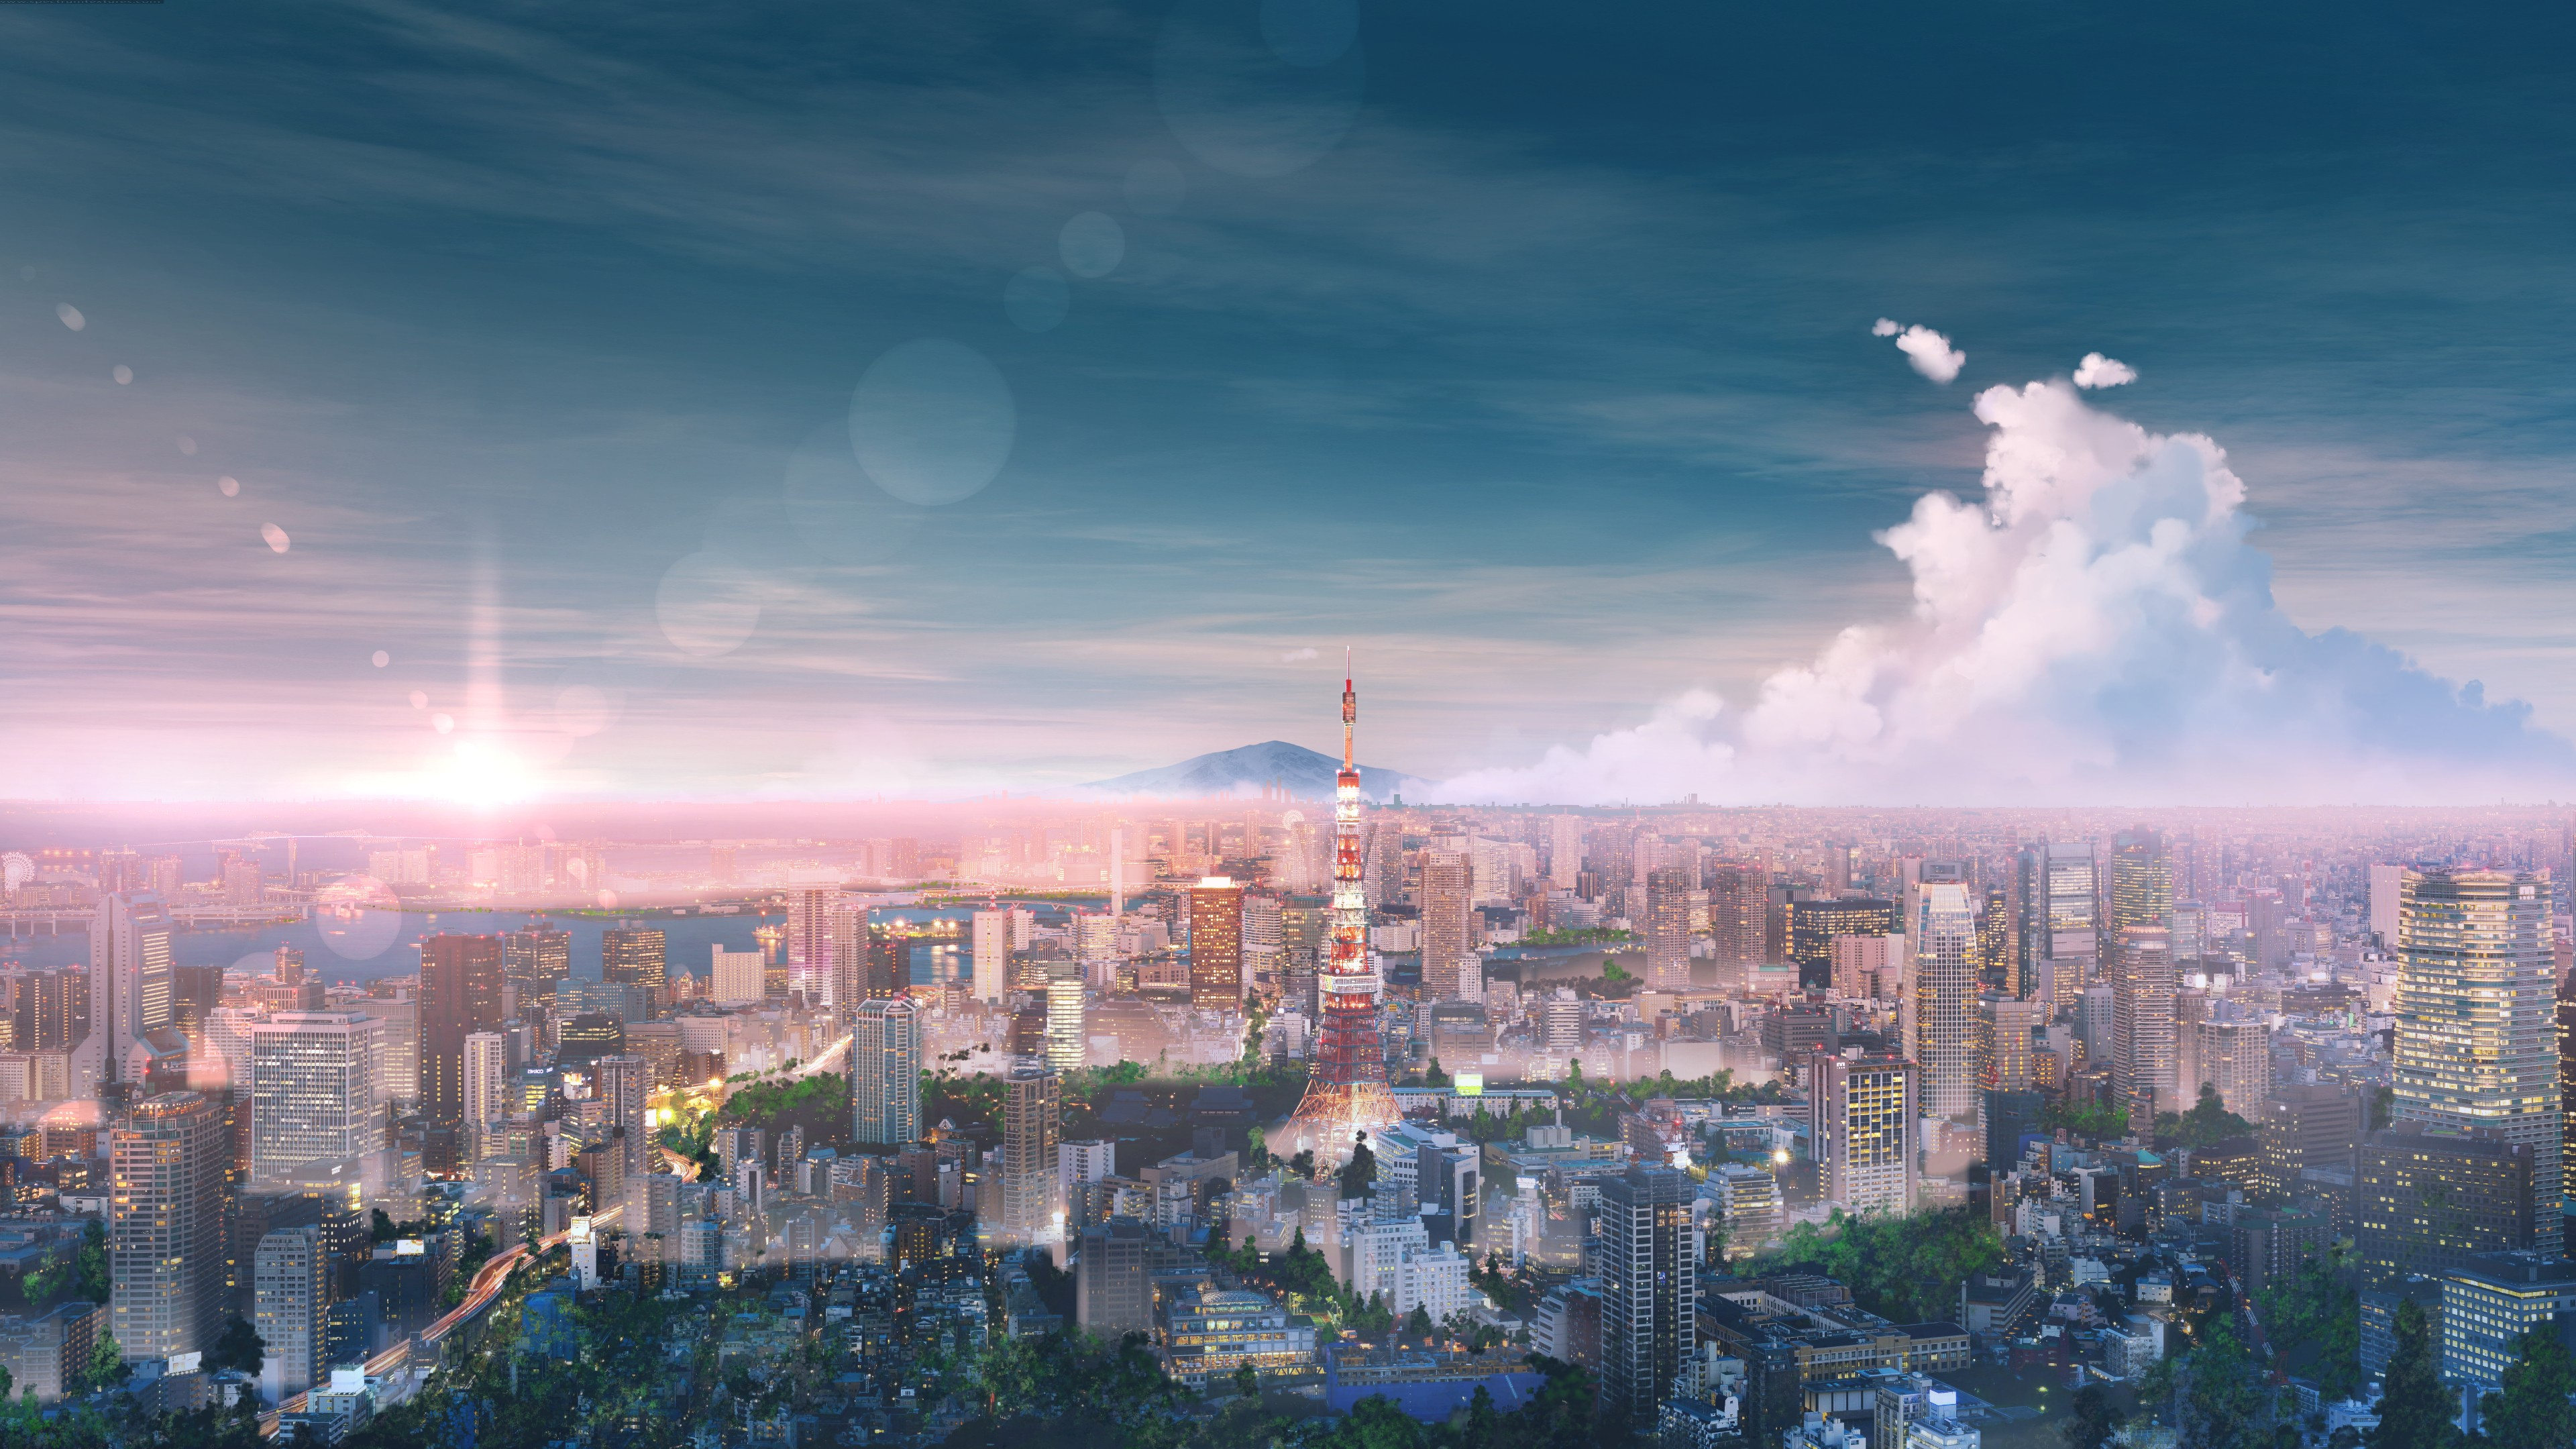 Tokyo Cityscape Anime 4k Hd Anime 4k Wallpapers Images Backgrounds Photos And Pictures